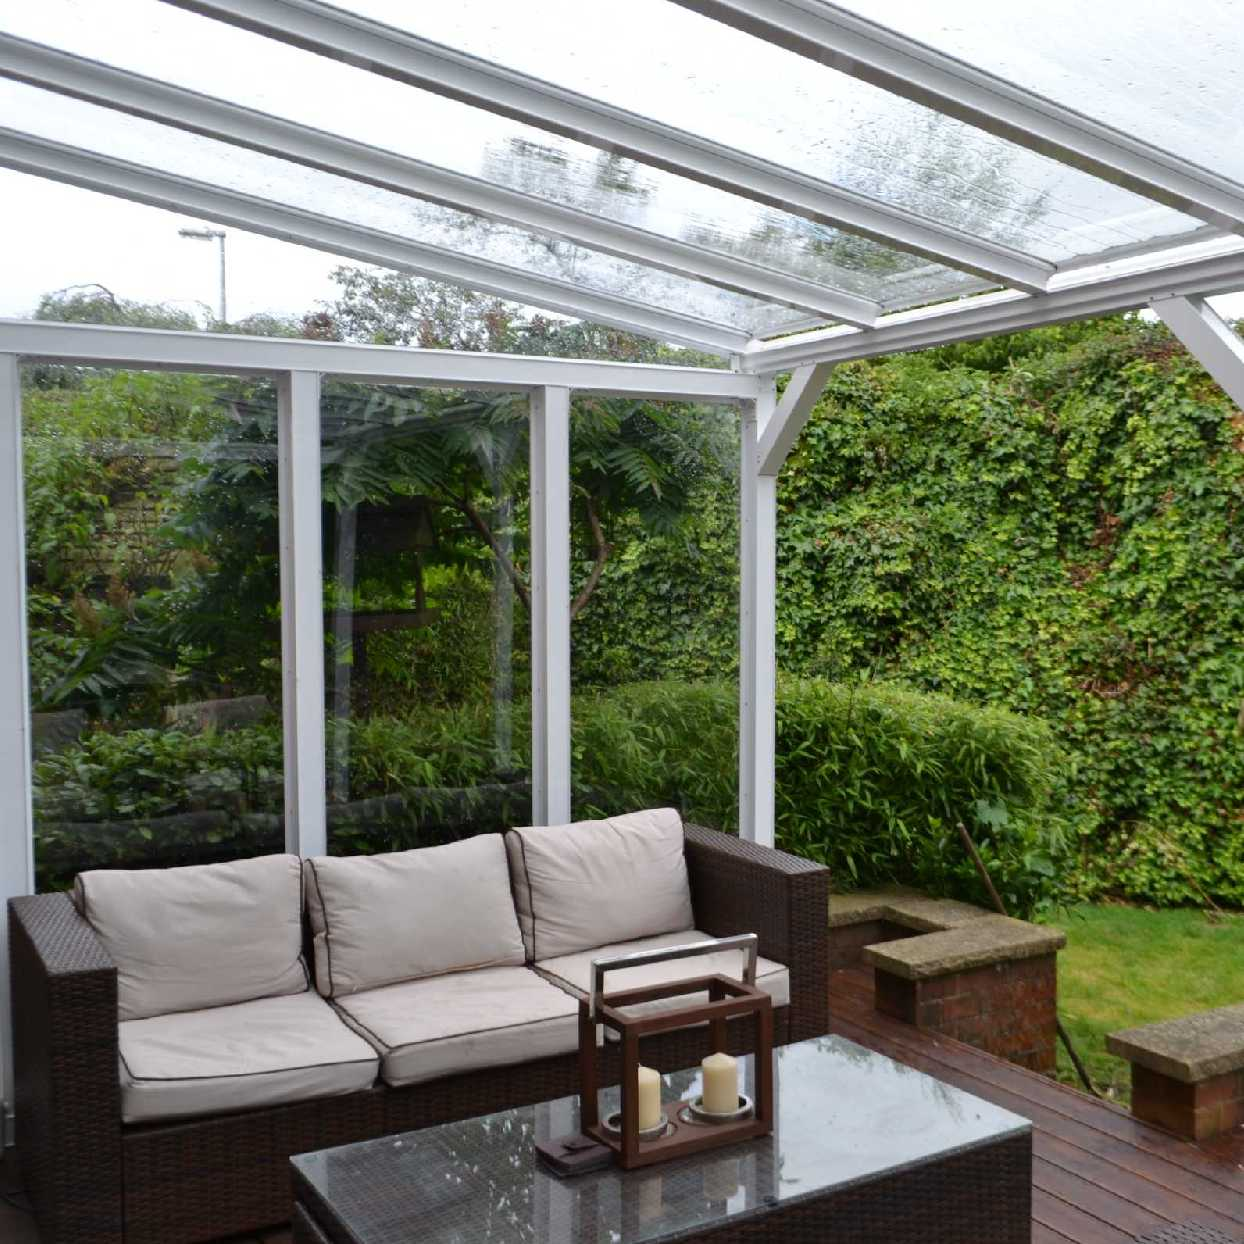 Omega Smart Lean-To Canopy with 6mm Glass Clear Plate Polycarbonate Glazing - 4.2m (W) x 2.5m (P), (3) Supporting Posts